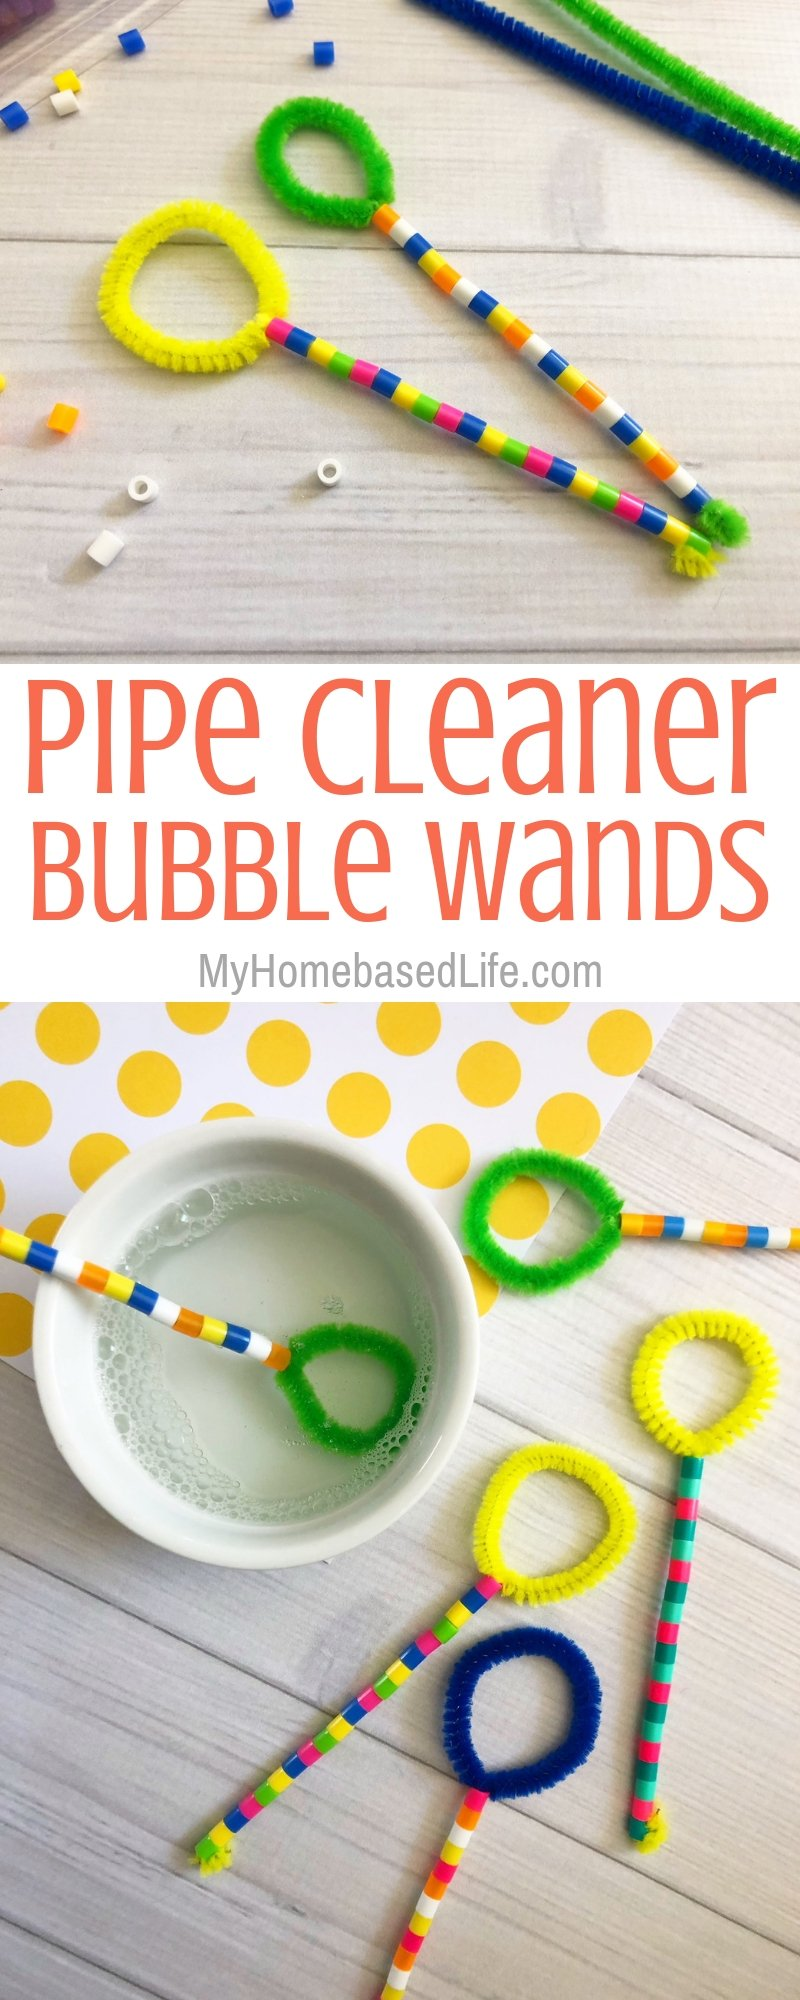 This year we made our very one customizable Bubble Wands and my kids erupted with joy. Follow these simple steps to make yours. #kidsactivity #kidsdiy #myhomebasedlife #bubble #spring activity | Kids Activity | Kids DIY | Simple Bubble Wands | Pipe Cleaner Activities |